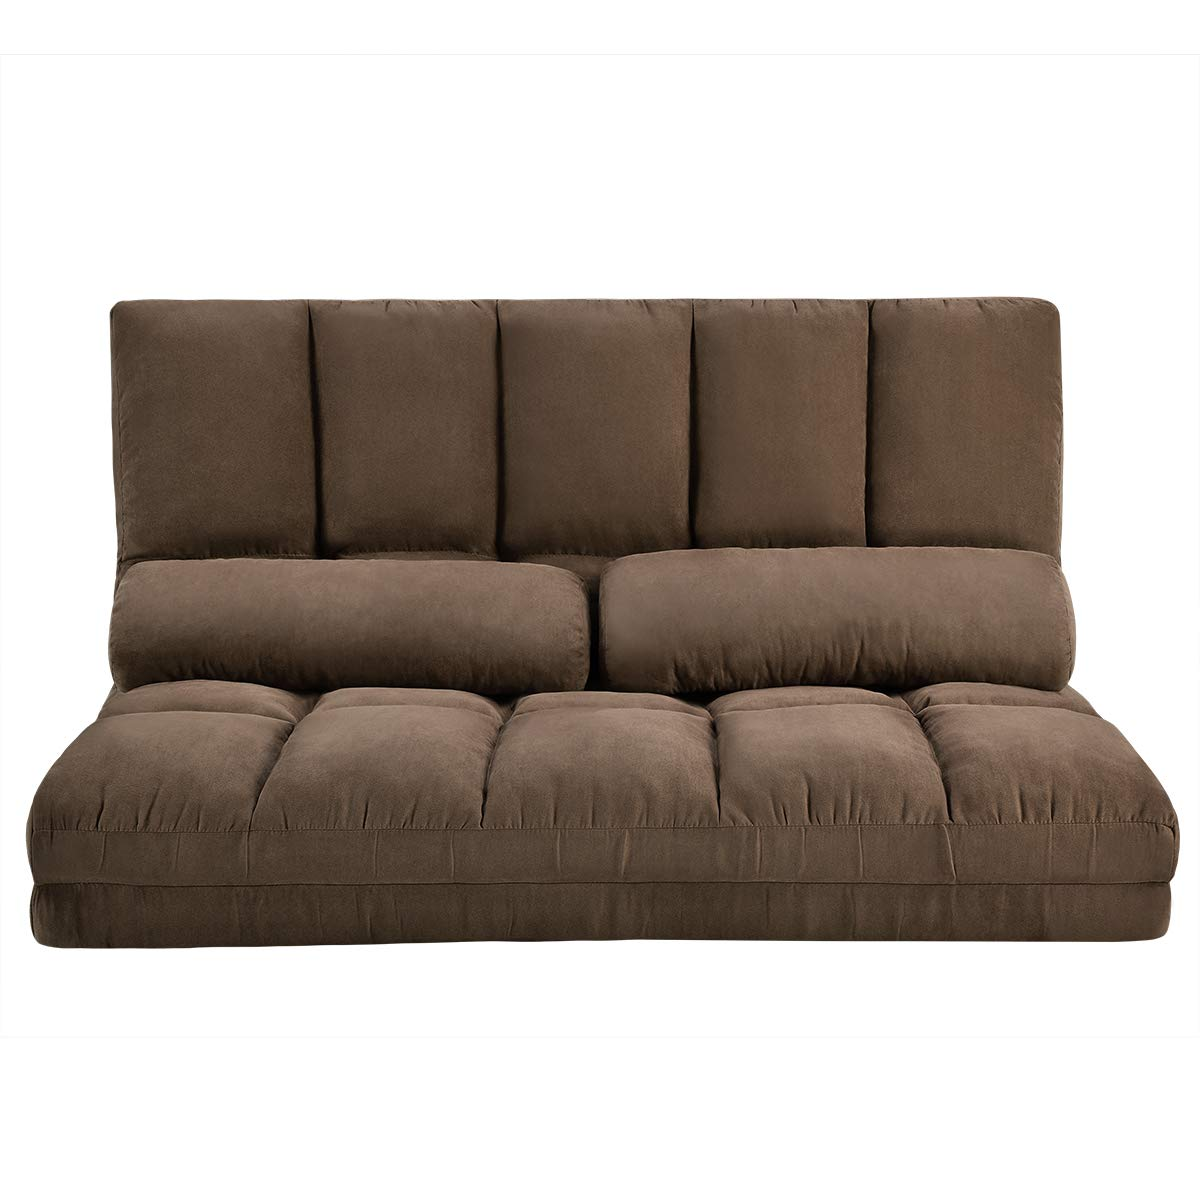 Double Chaise Lounge Sofa Chair Floor Couch with Two Pillows (Brown) by Harper & Bright Designs